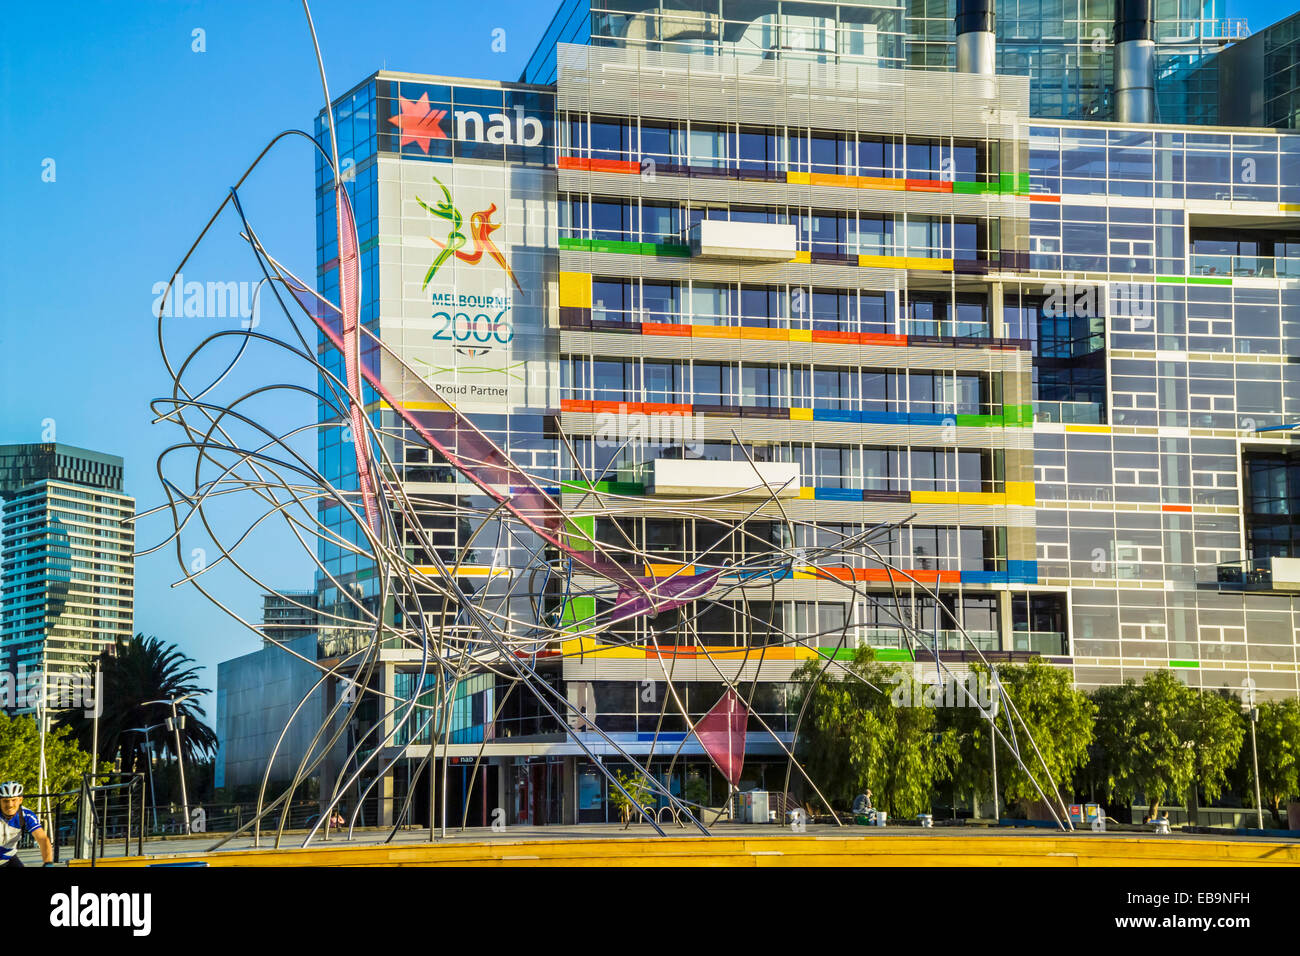 Shoal Fly by, Installation public art project by Cat Macleod and Michael Bellemo, Docklands, Melbourne Australia - Stock Image